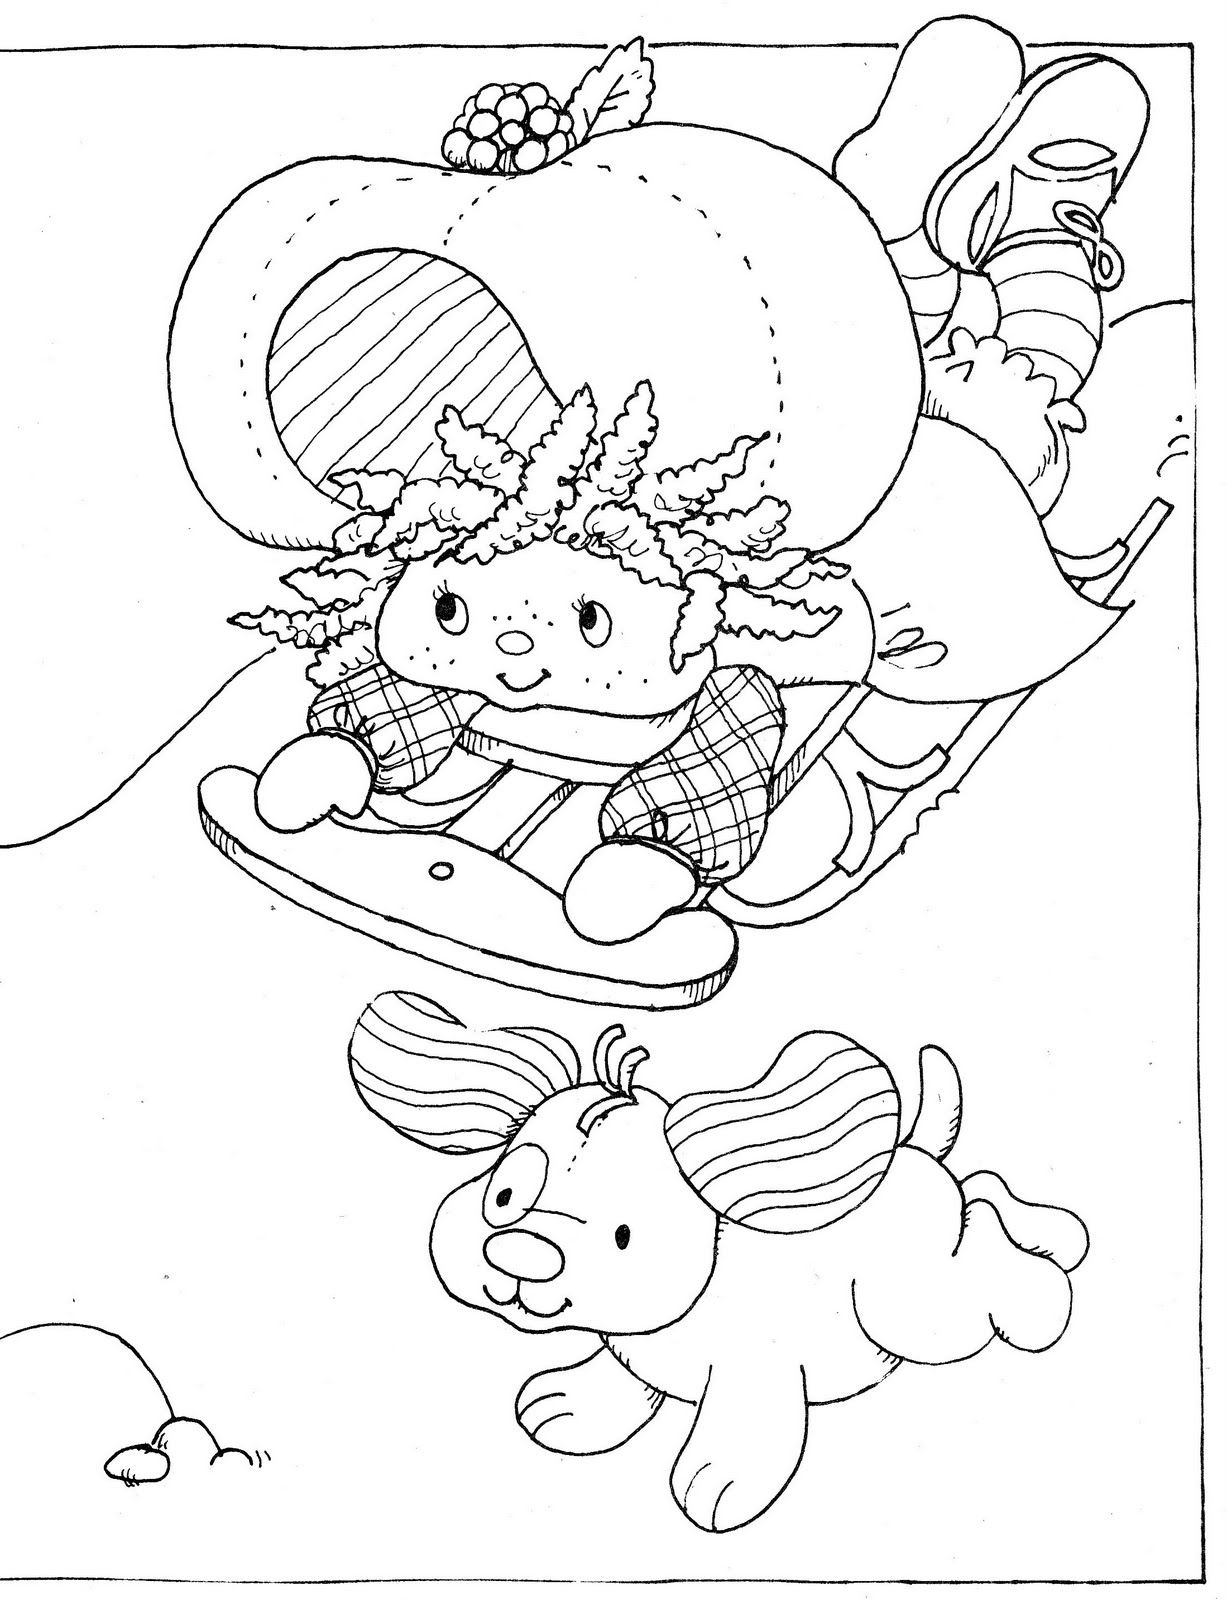 Winter fun coloring sheets - Vintage Kenner American Greetings Strawberry Shortcake Strawberry Shortcake S Winter Fun Coloring Book Back